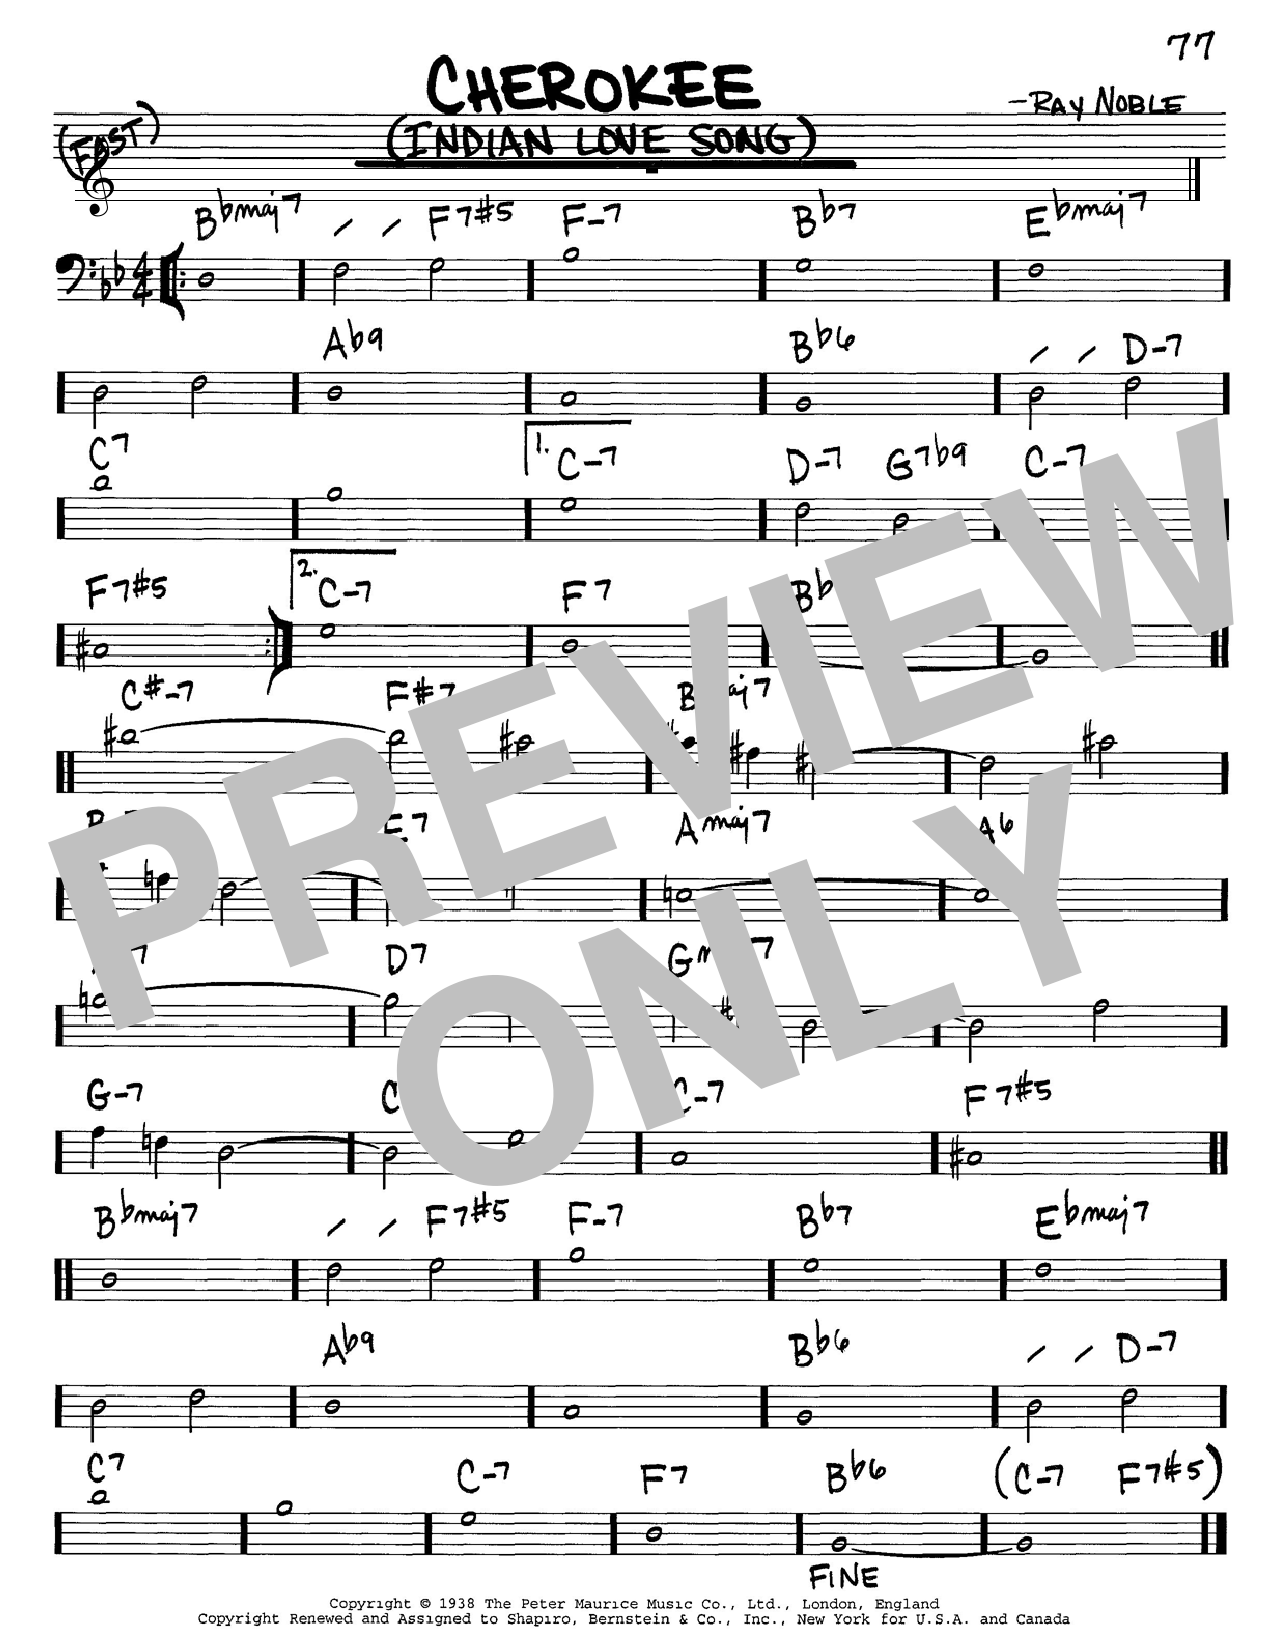 Ray Noble And His Orchestra Cherokee (Indian Love Song) sheet music notes and chords